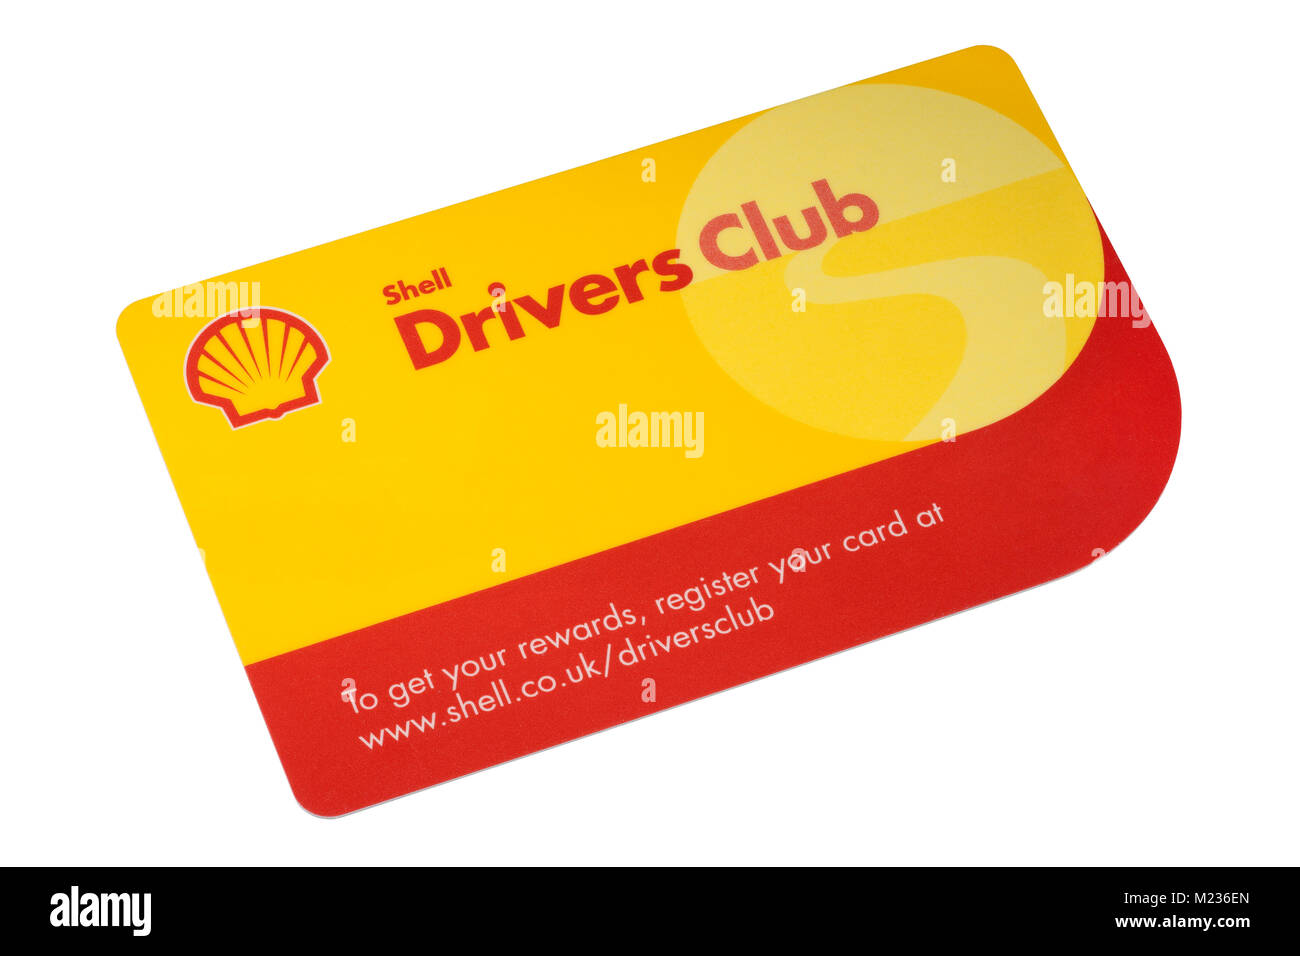 The best petrol loyalty cards for drivers